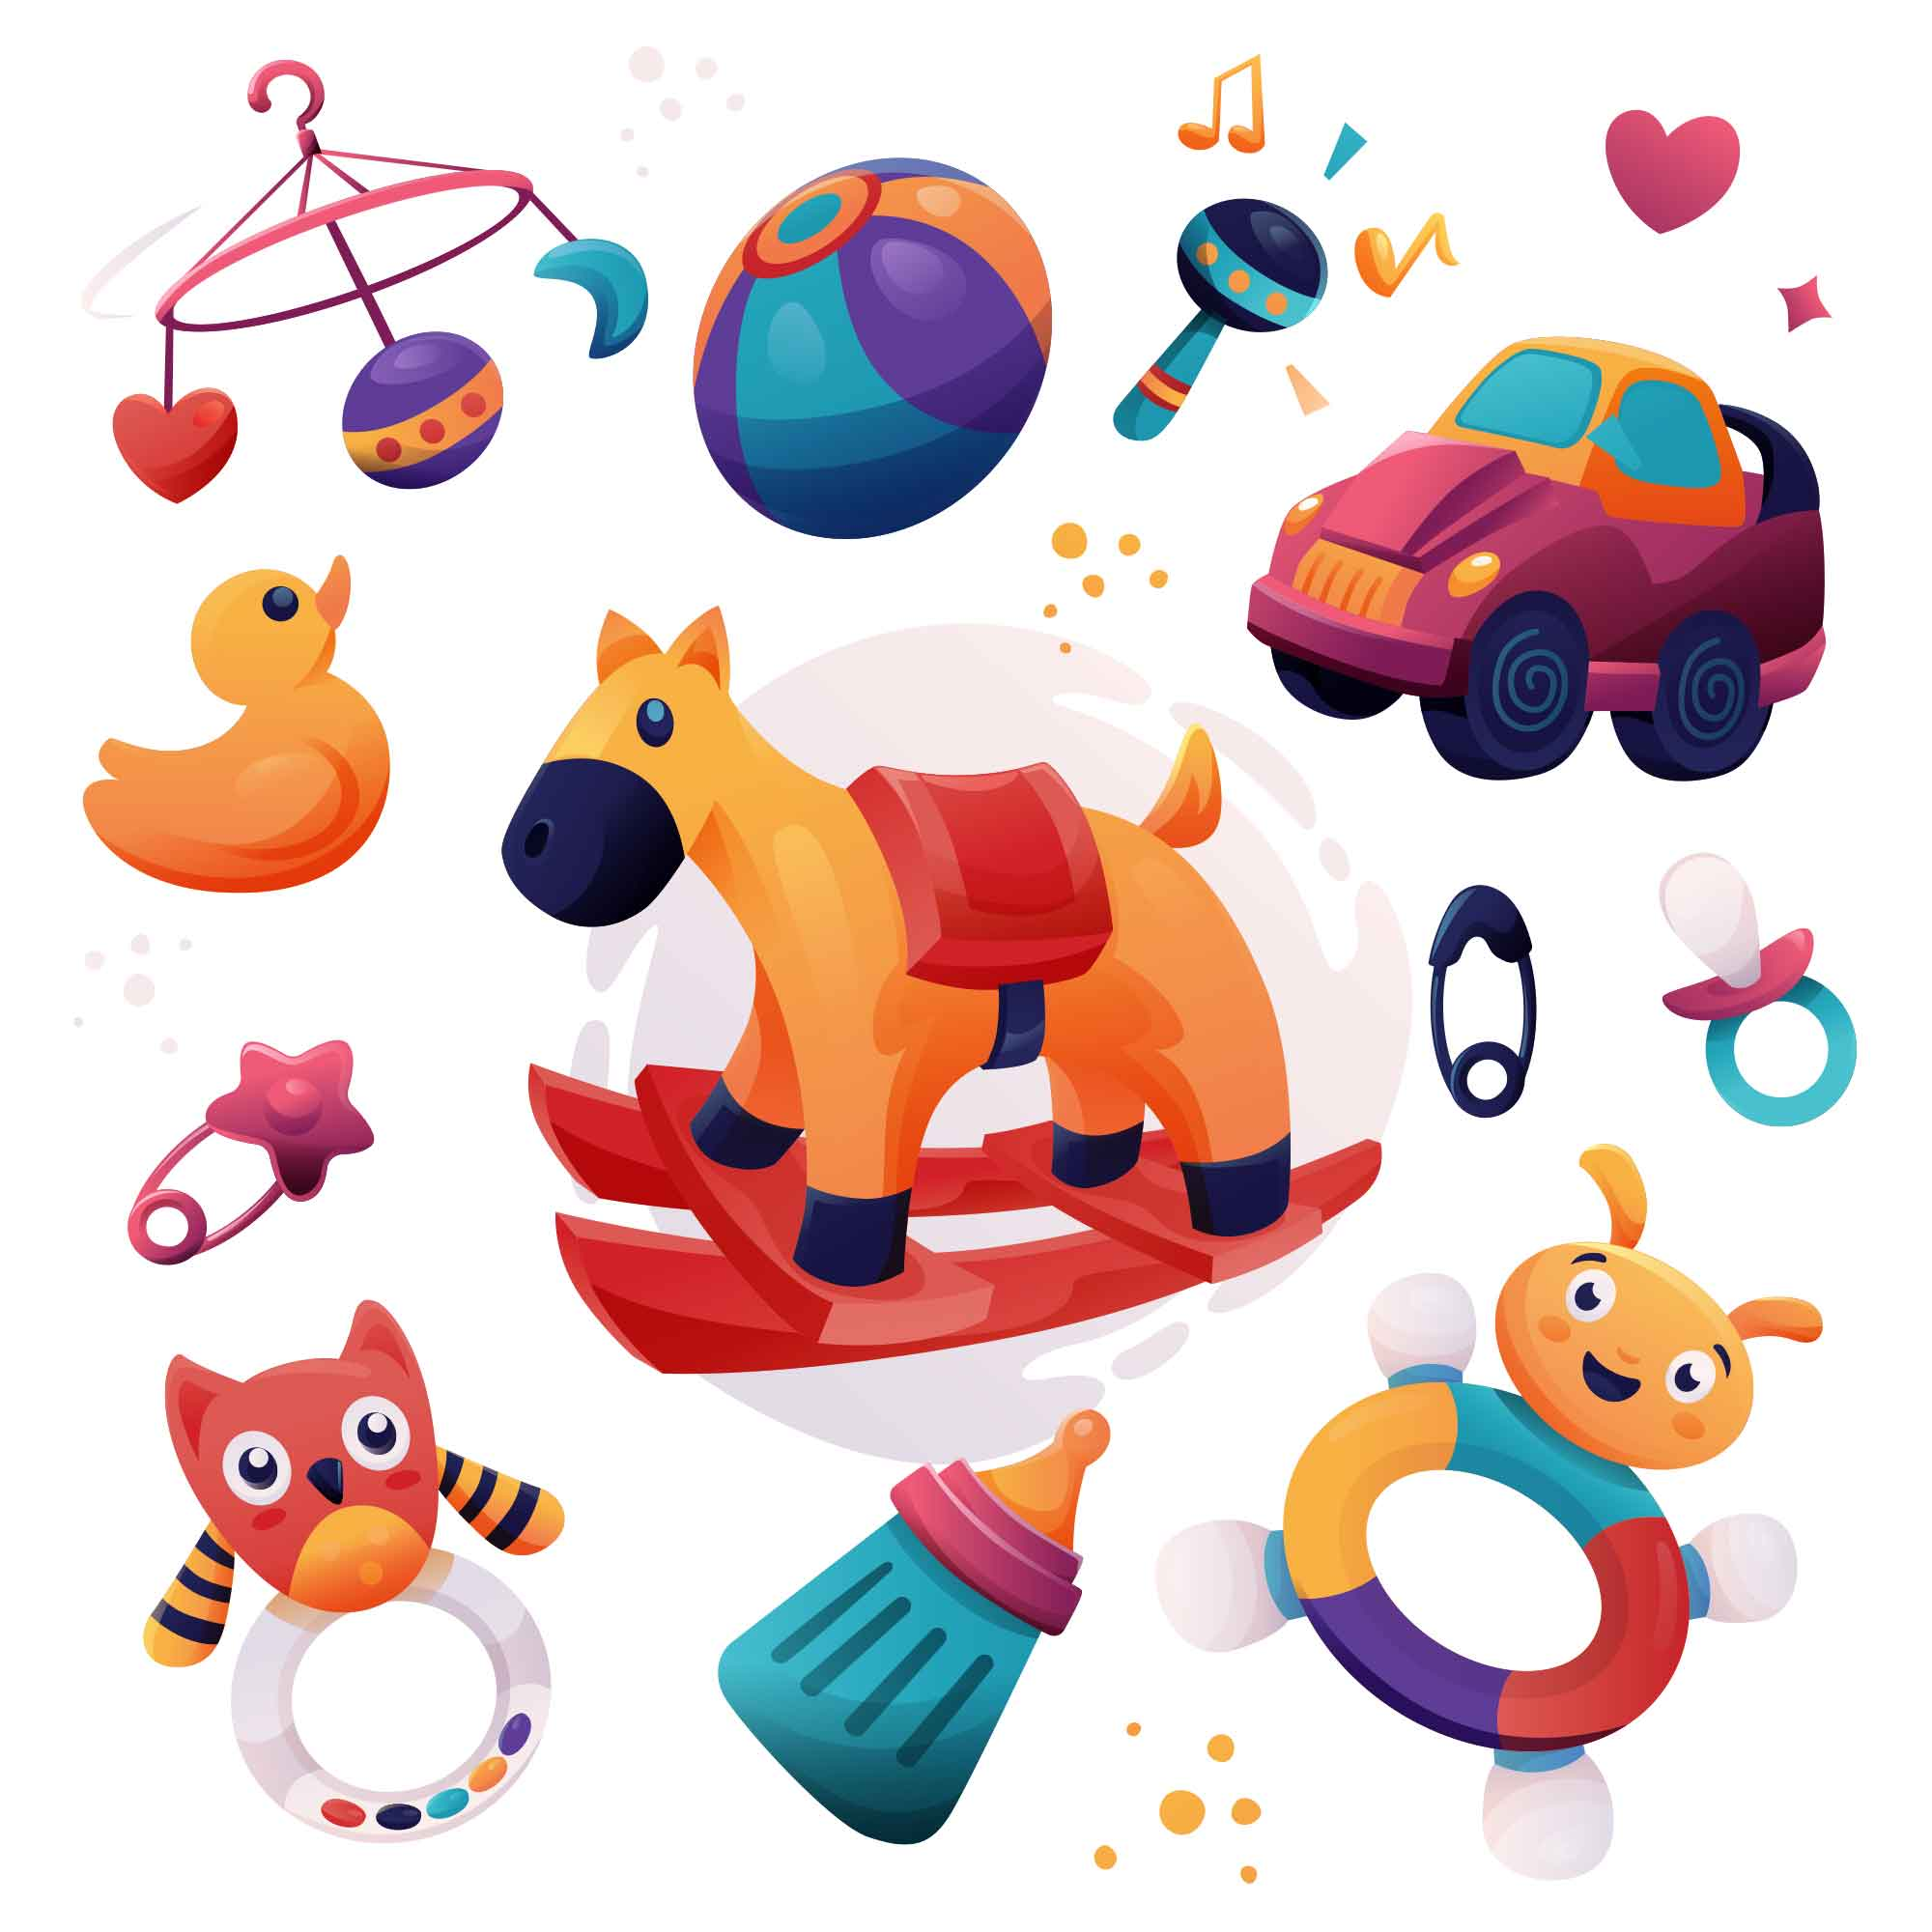 Baby Toy Illustrations